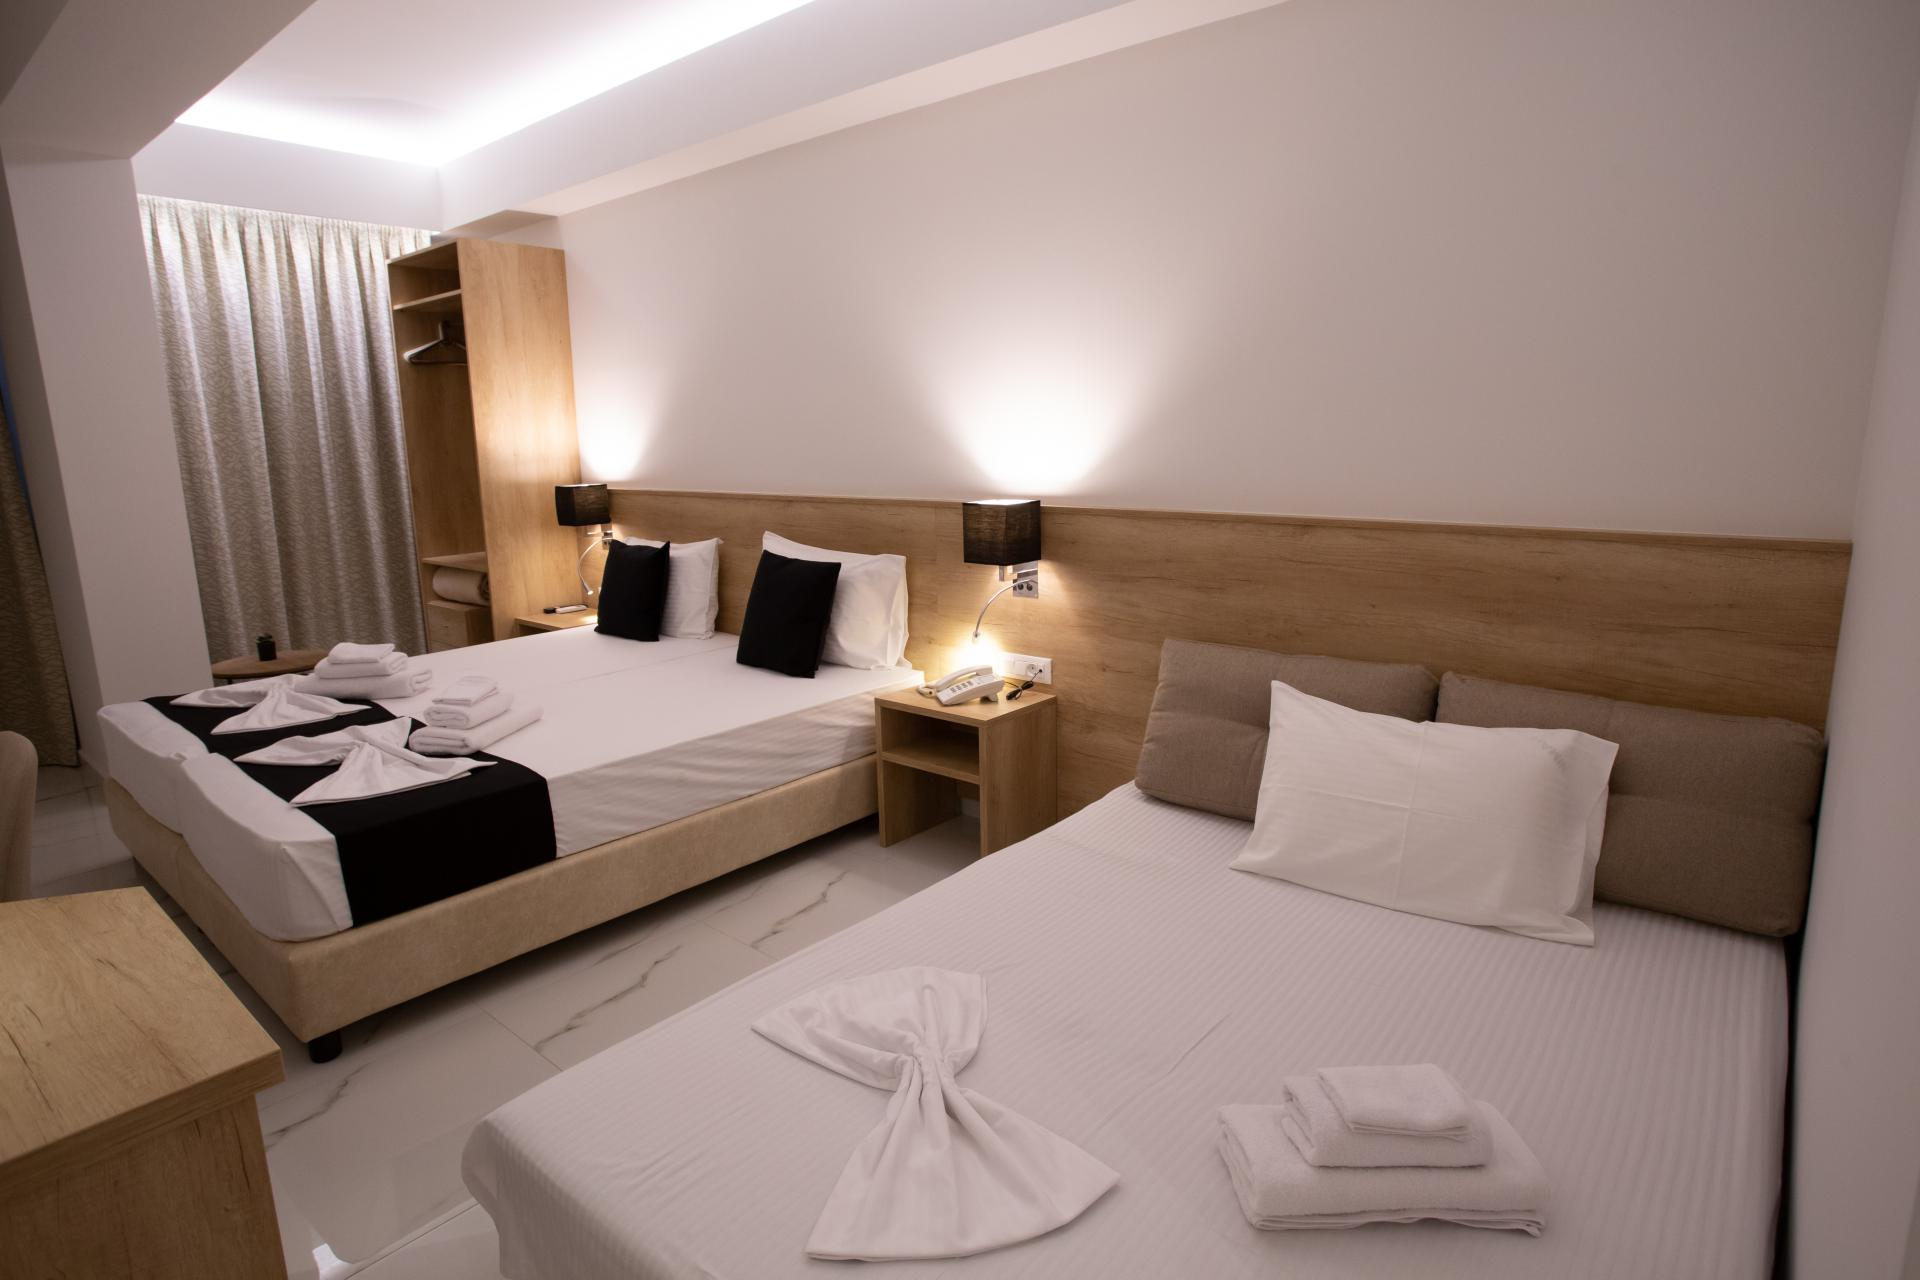 Triple Room 1-Marvel Deluxe Rooms Heraklion Crete